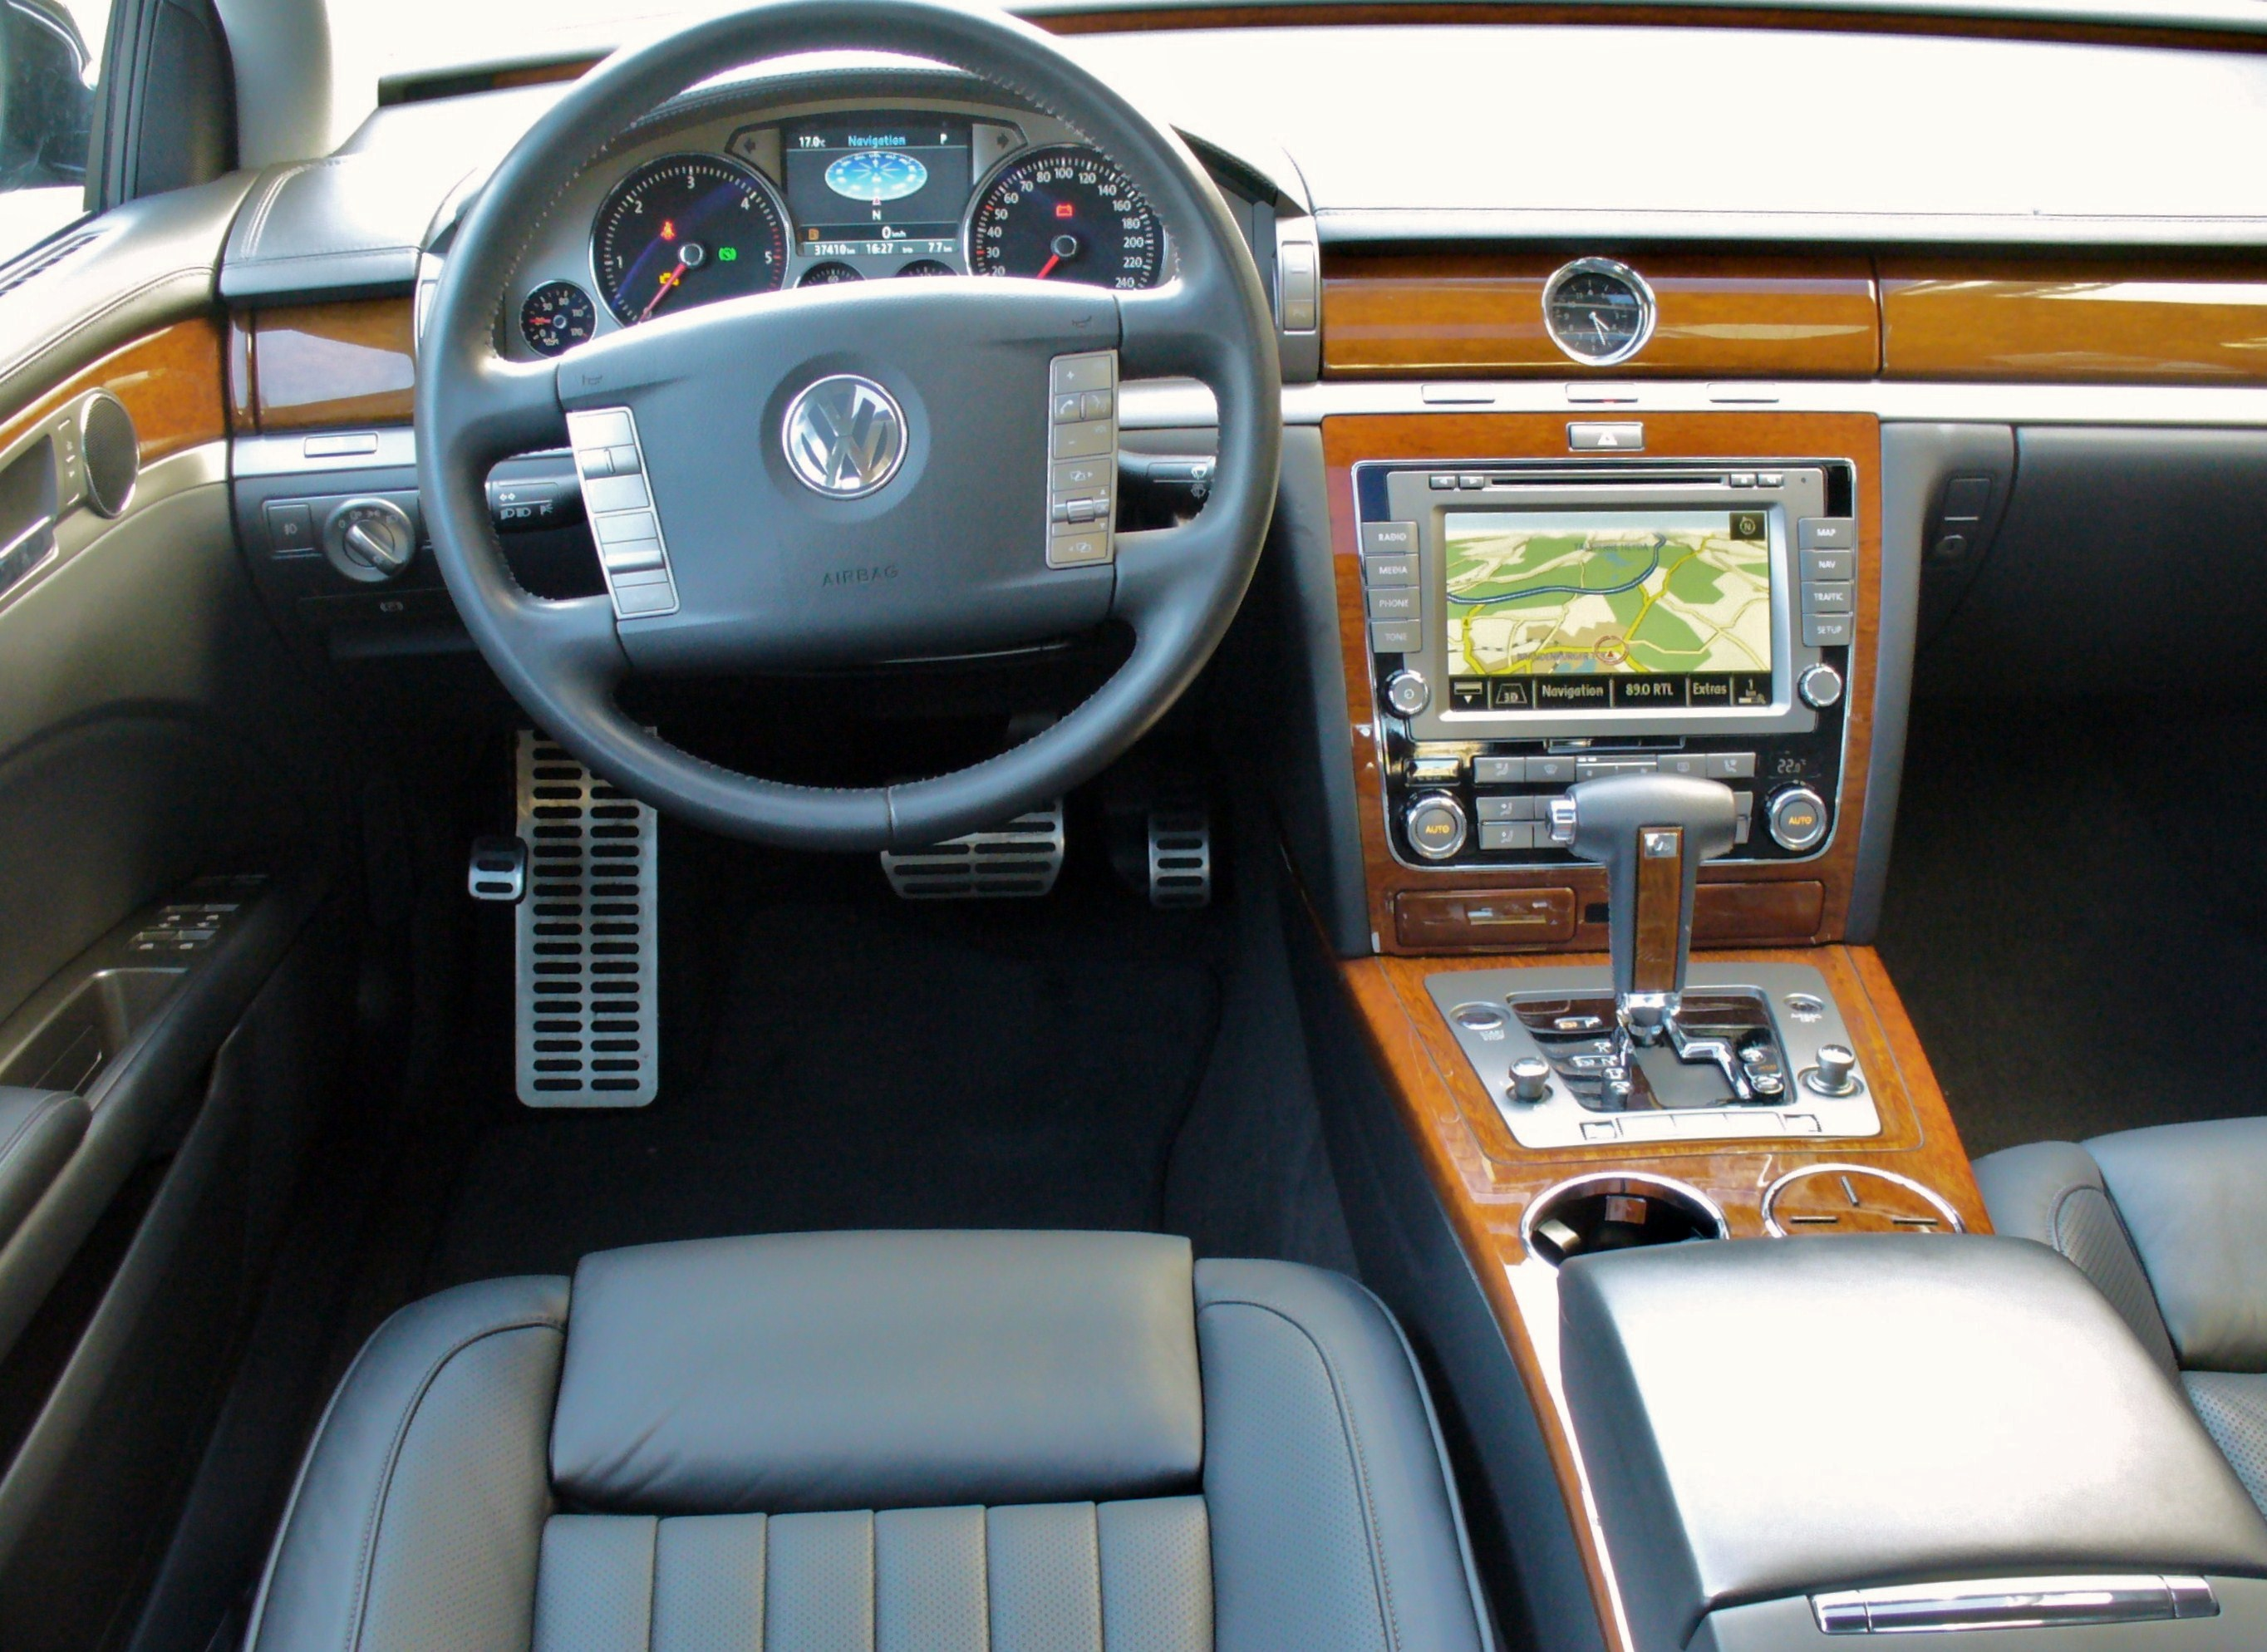 file vw phaeton 3 0 tdi 4motion tarantellaschwarz interieur jpg wikimedia commons. Black Bedroom Furniture Sets. Home Design Ideas